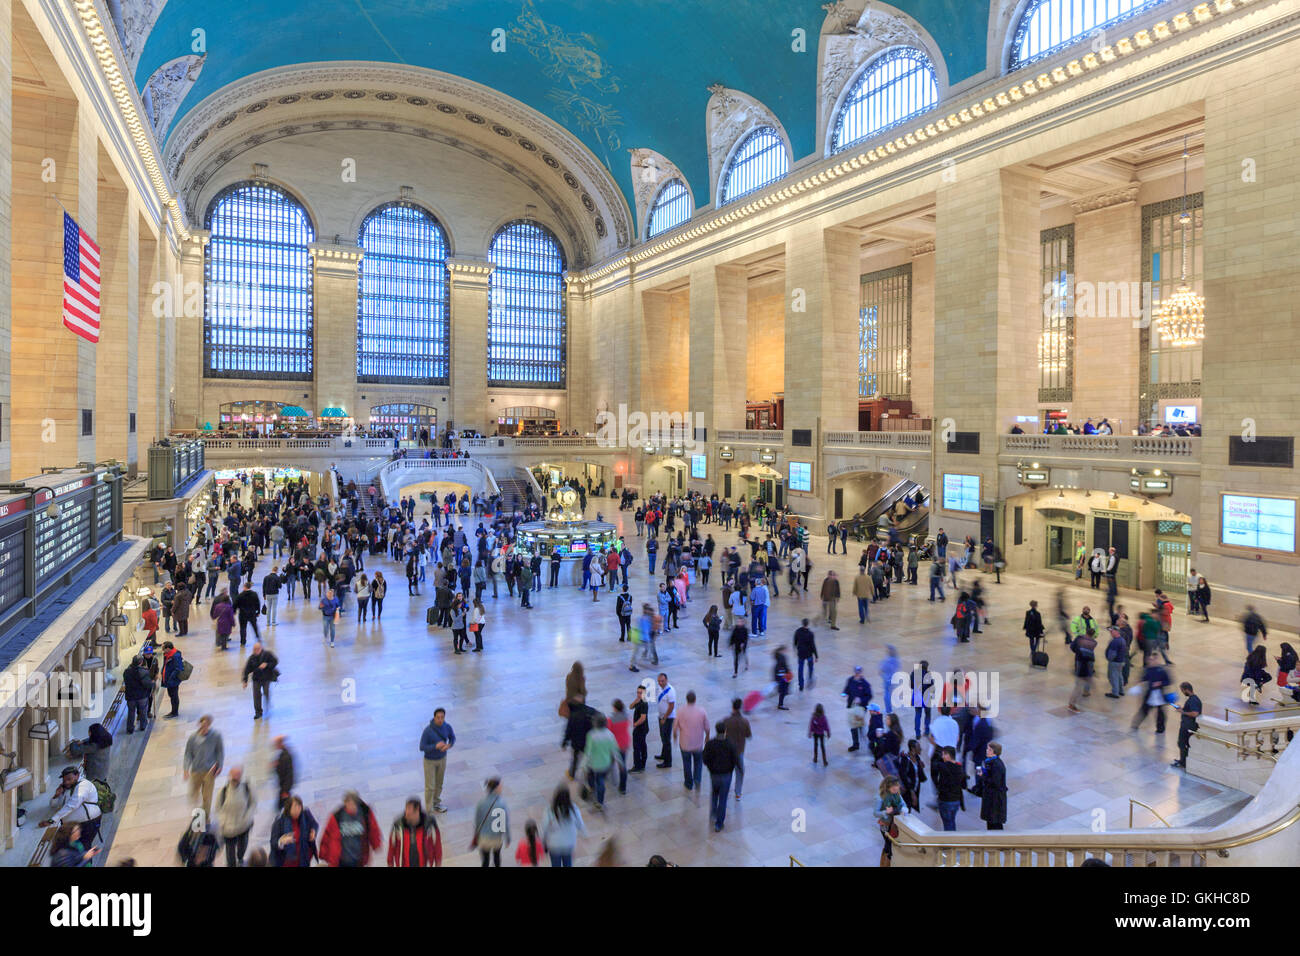 USA, New York, New York City, Manhattan, Grand Central Station - Stock Image